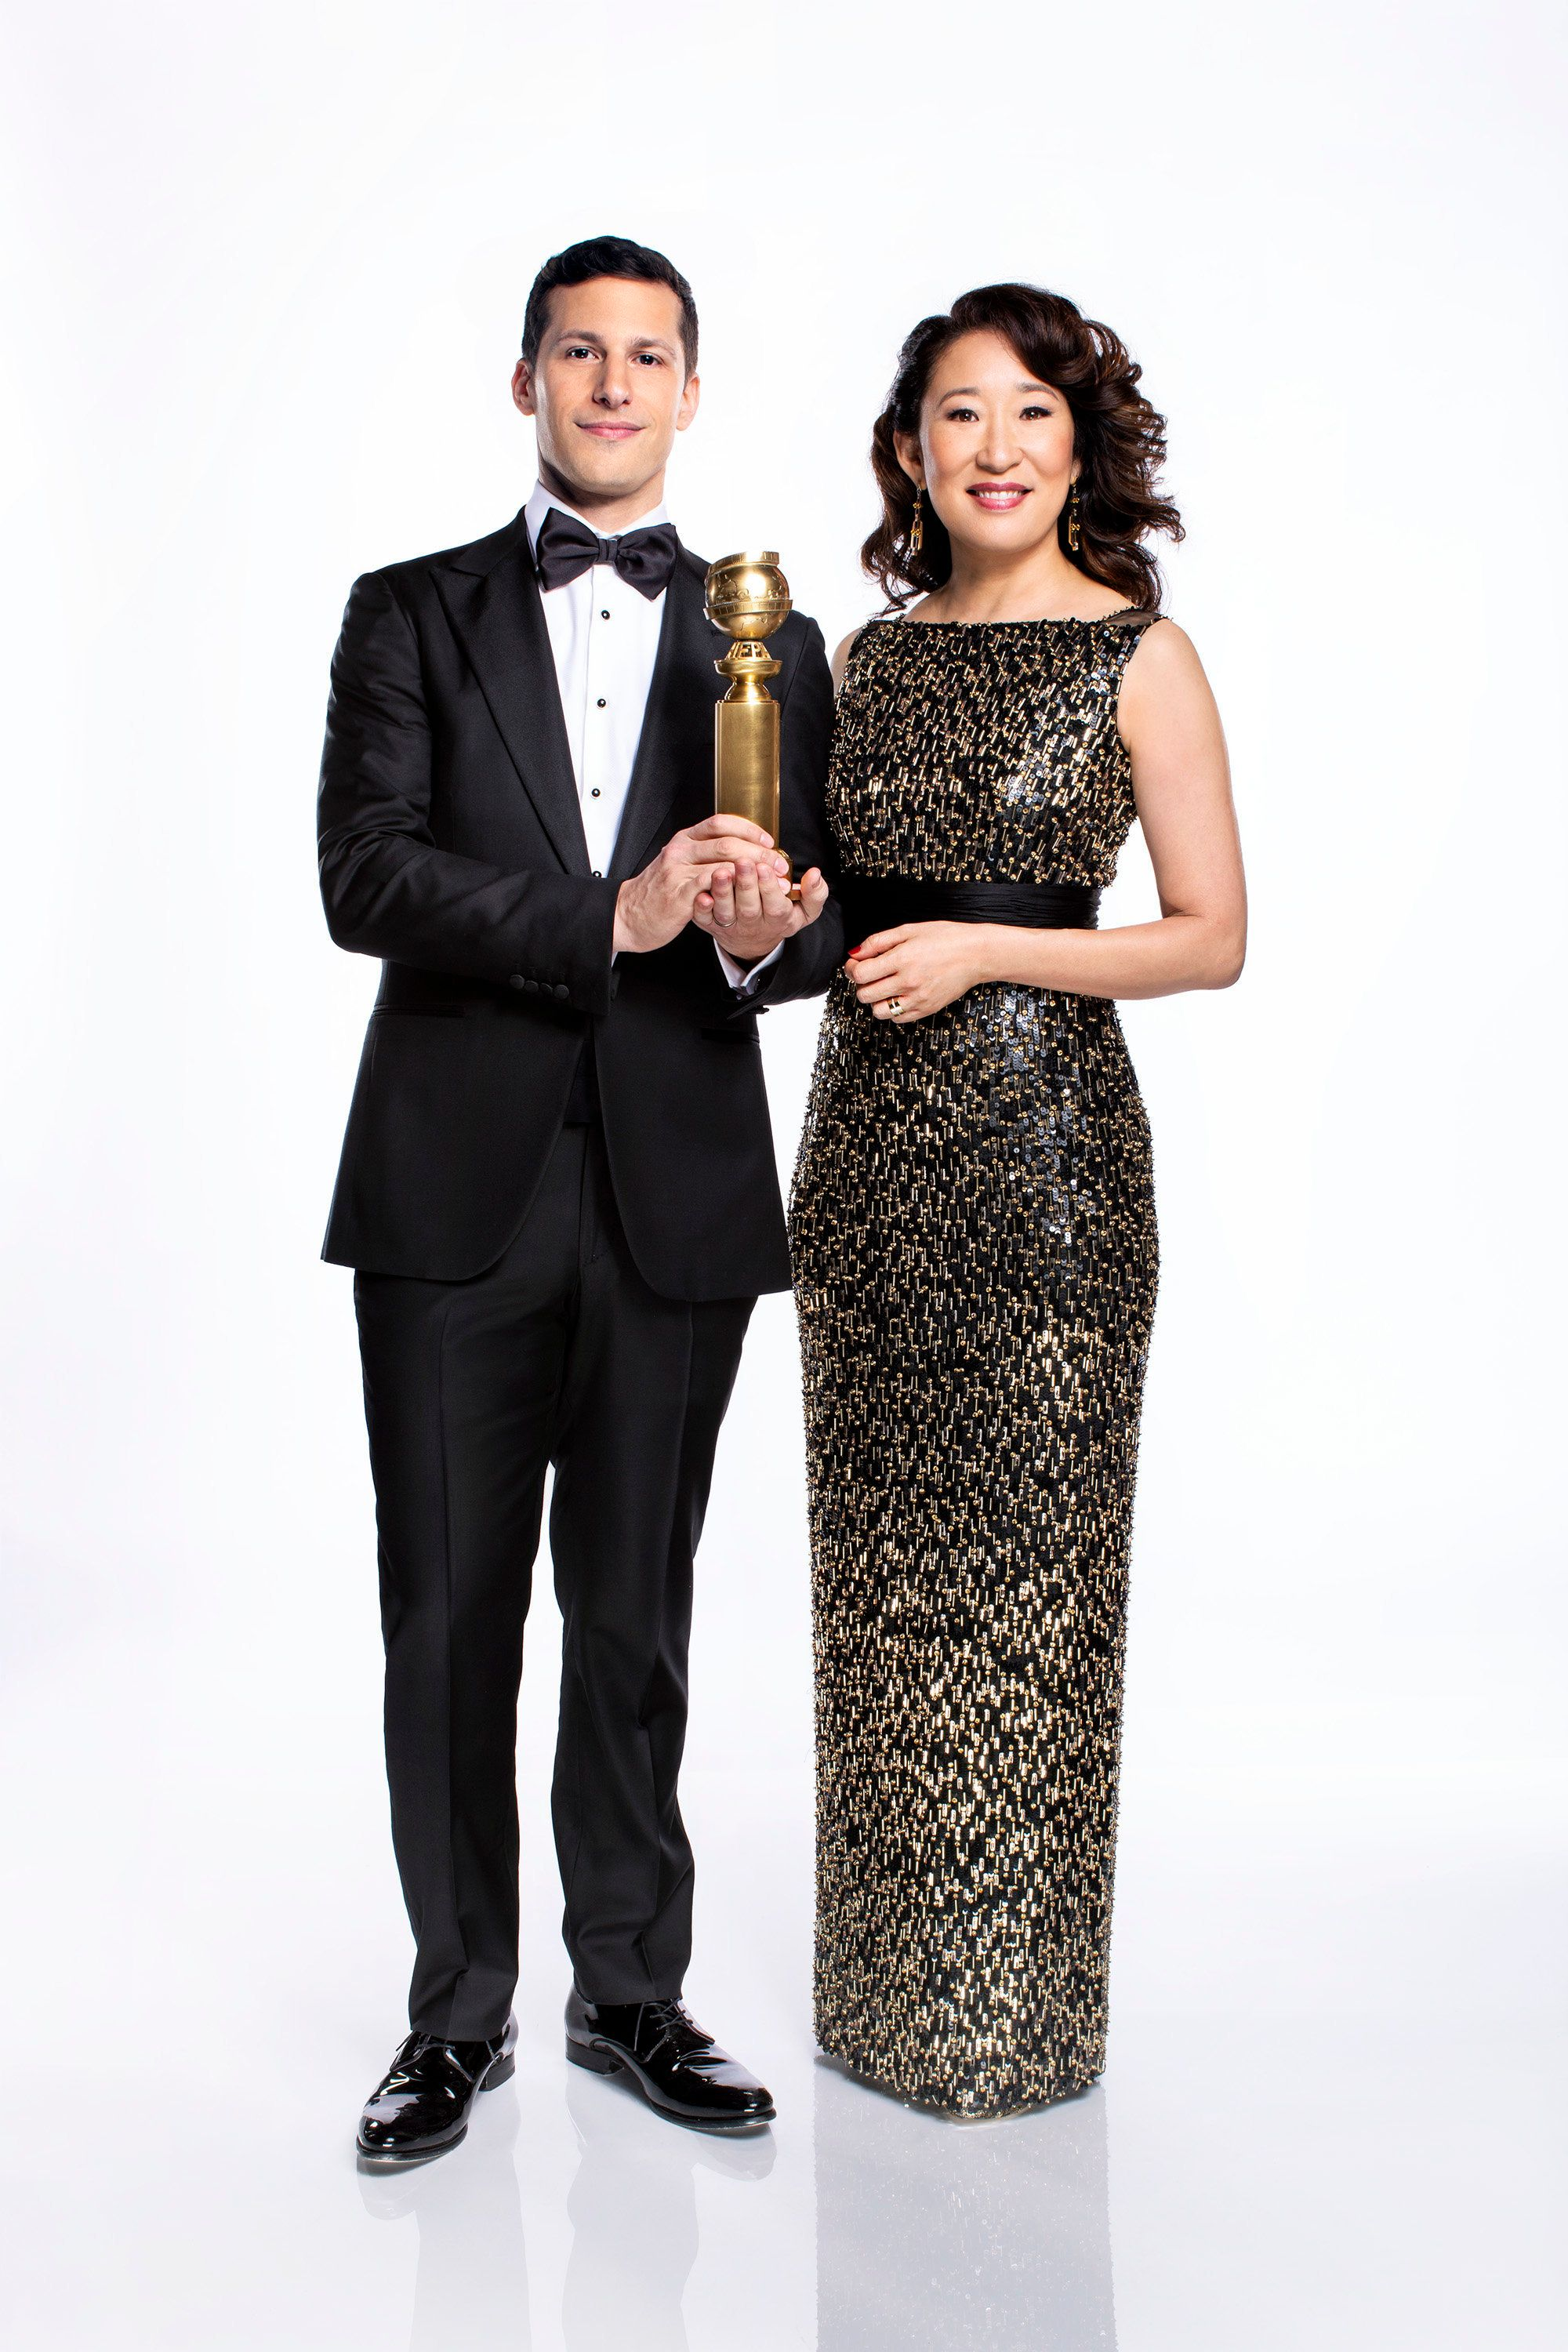 Golden Globes co-hosts Andy Samberg and Sandra Oh don't plan to focus on politics during the